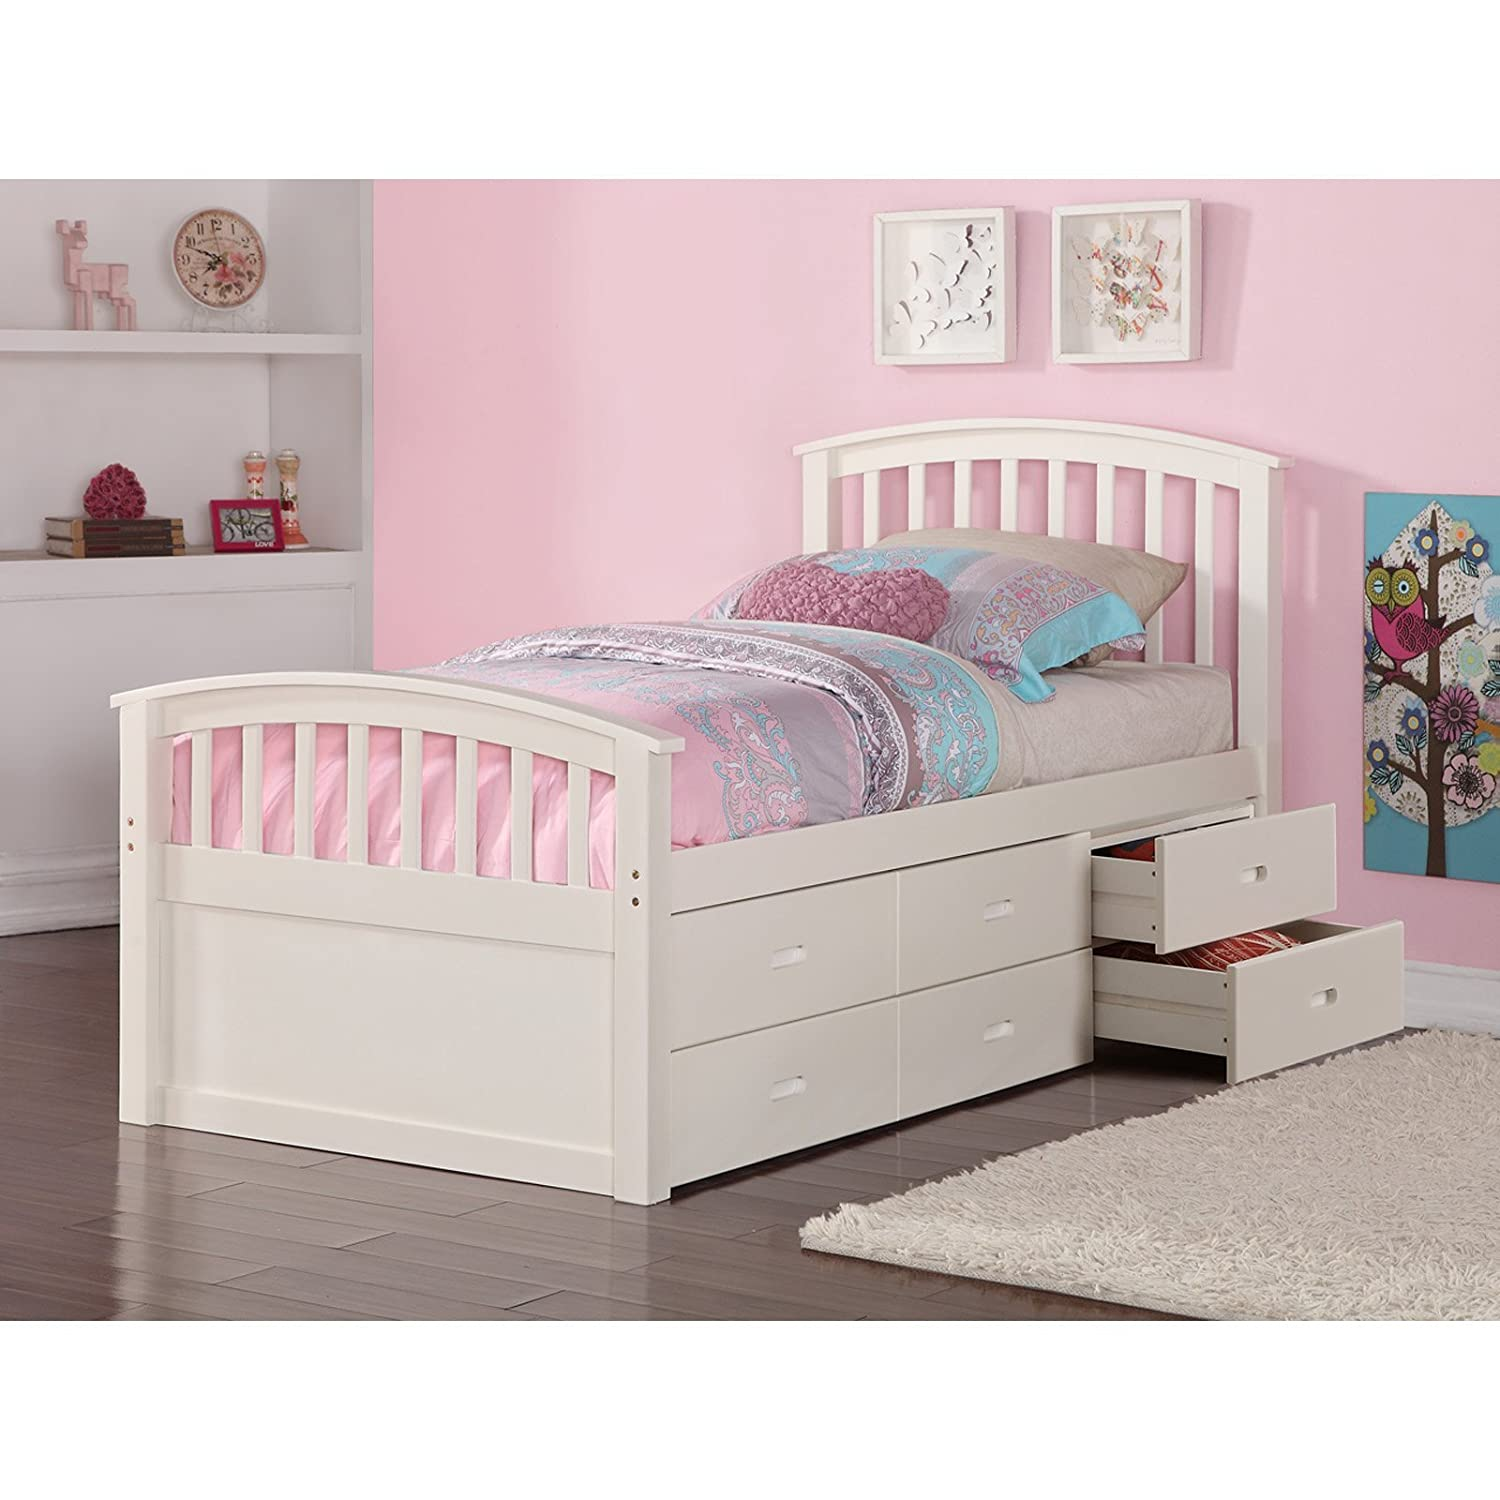 Amazoncom DONCO Kids 425CP Series Bed Twin Dark Cappuccino